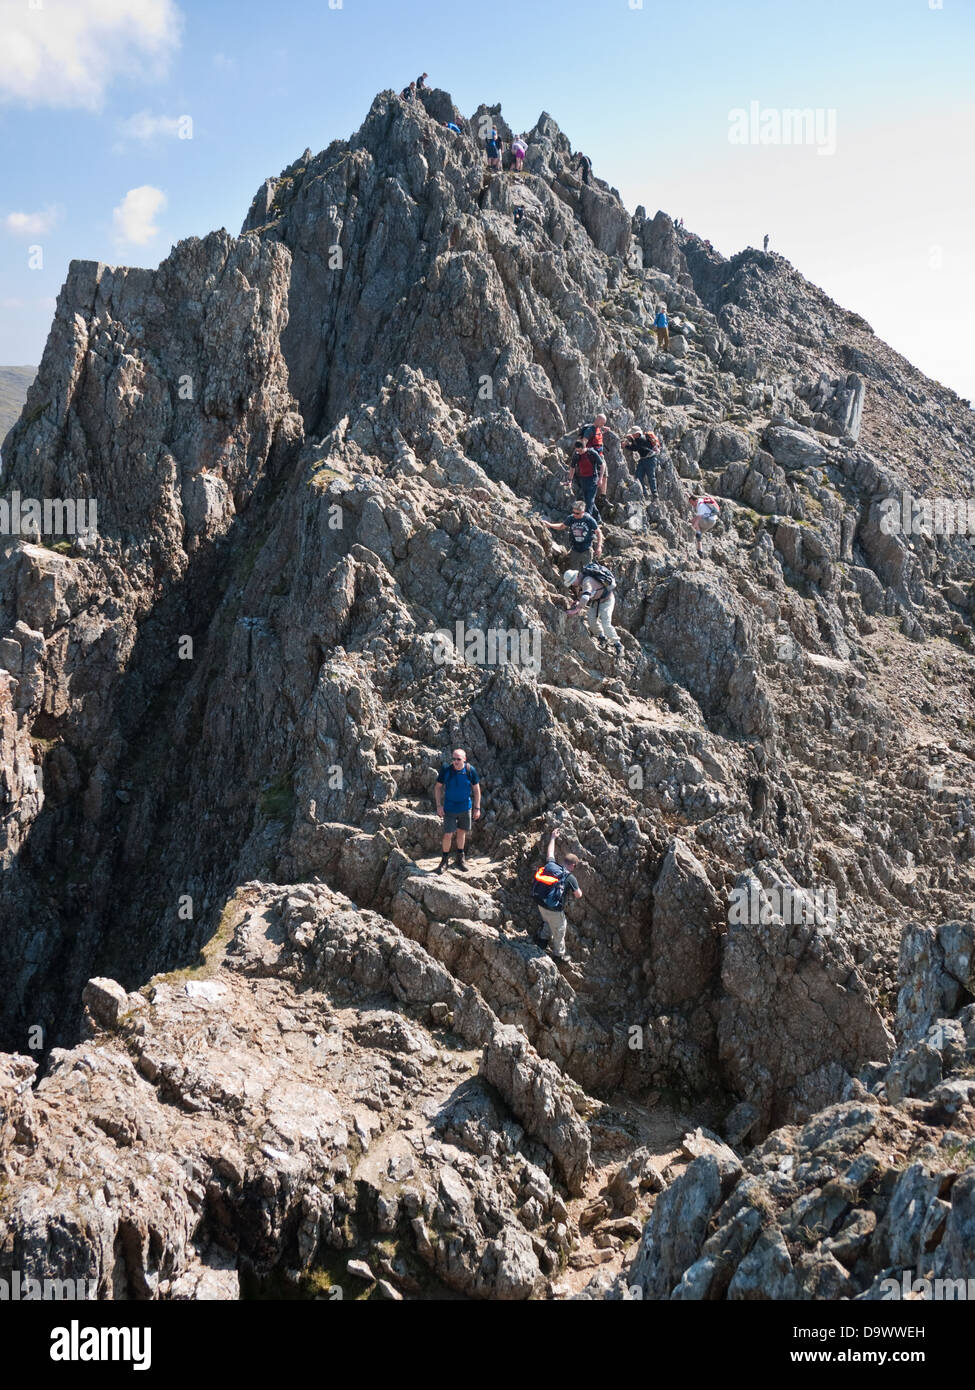 Scramblers descend the pinnacles on Crib Goch, a famous knife-edge arete on the flanks of Snowdon Stock Photo